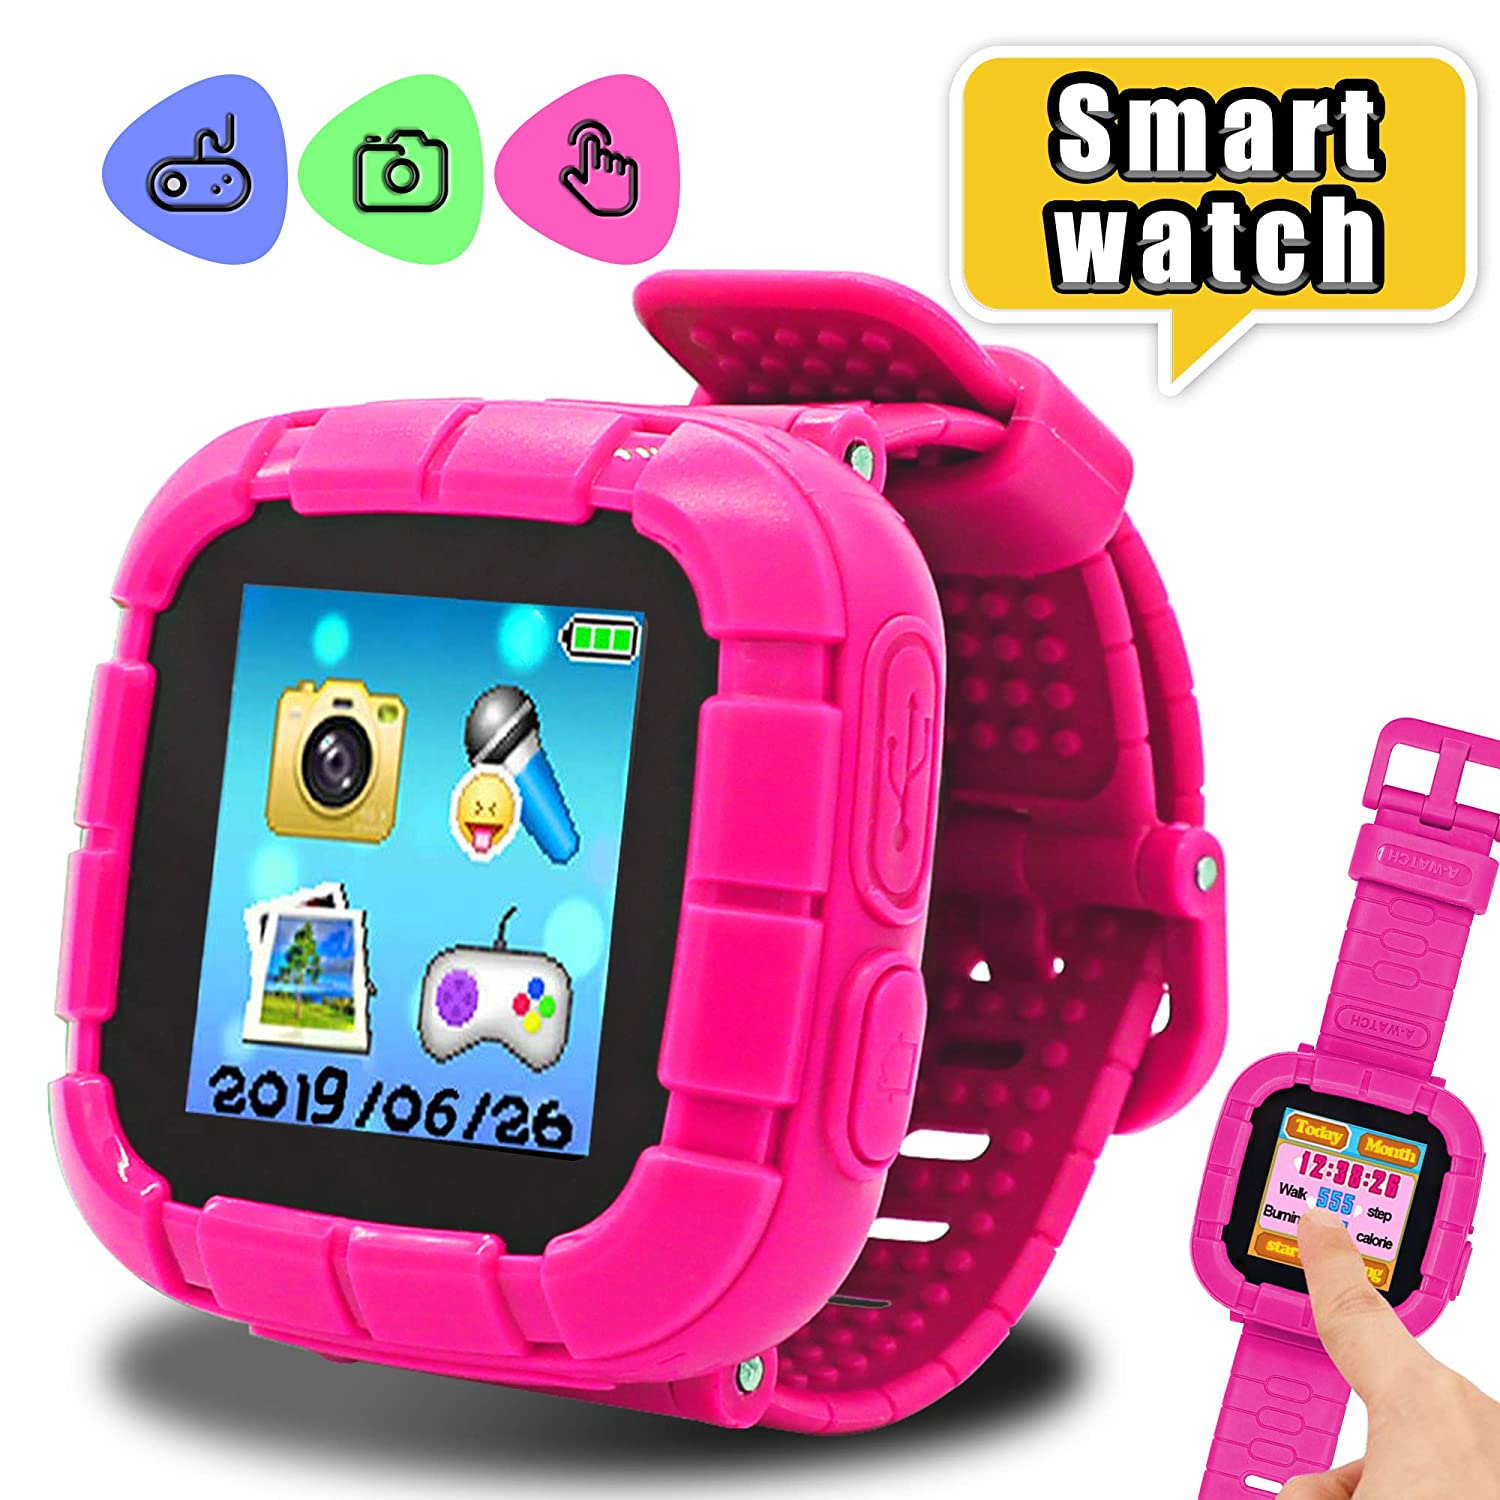 Gifts for 3-8 Year Old Girls Yehtta Smart Watch for Kids Smartwatch Touchscreen Kids Watches Girls Alarm Clock Electronic Toys for Kids VTech Kidizoom ...